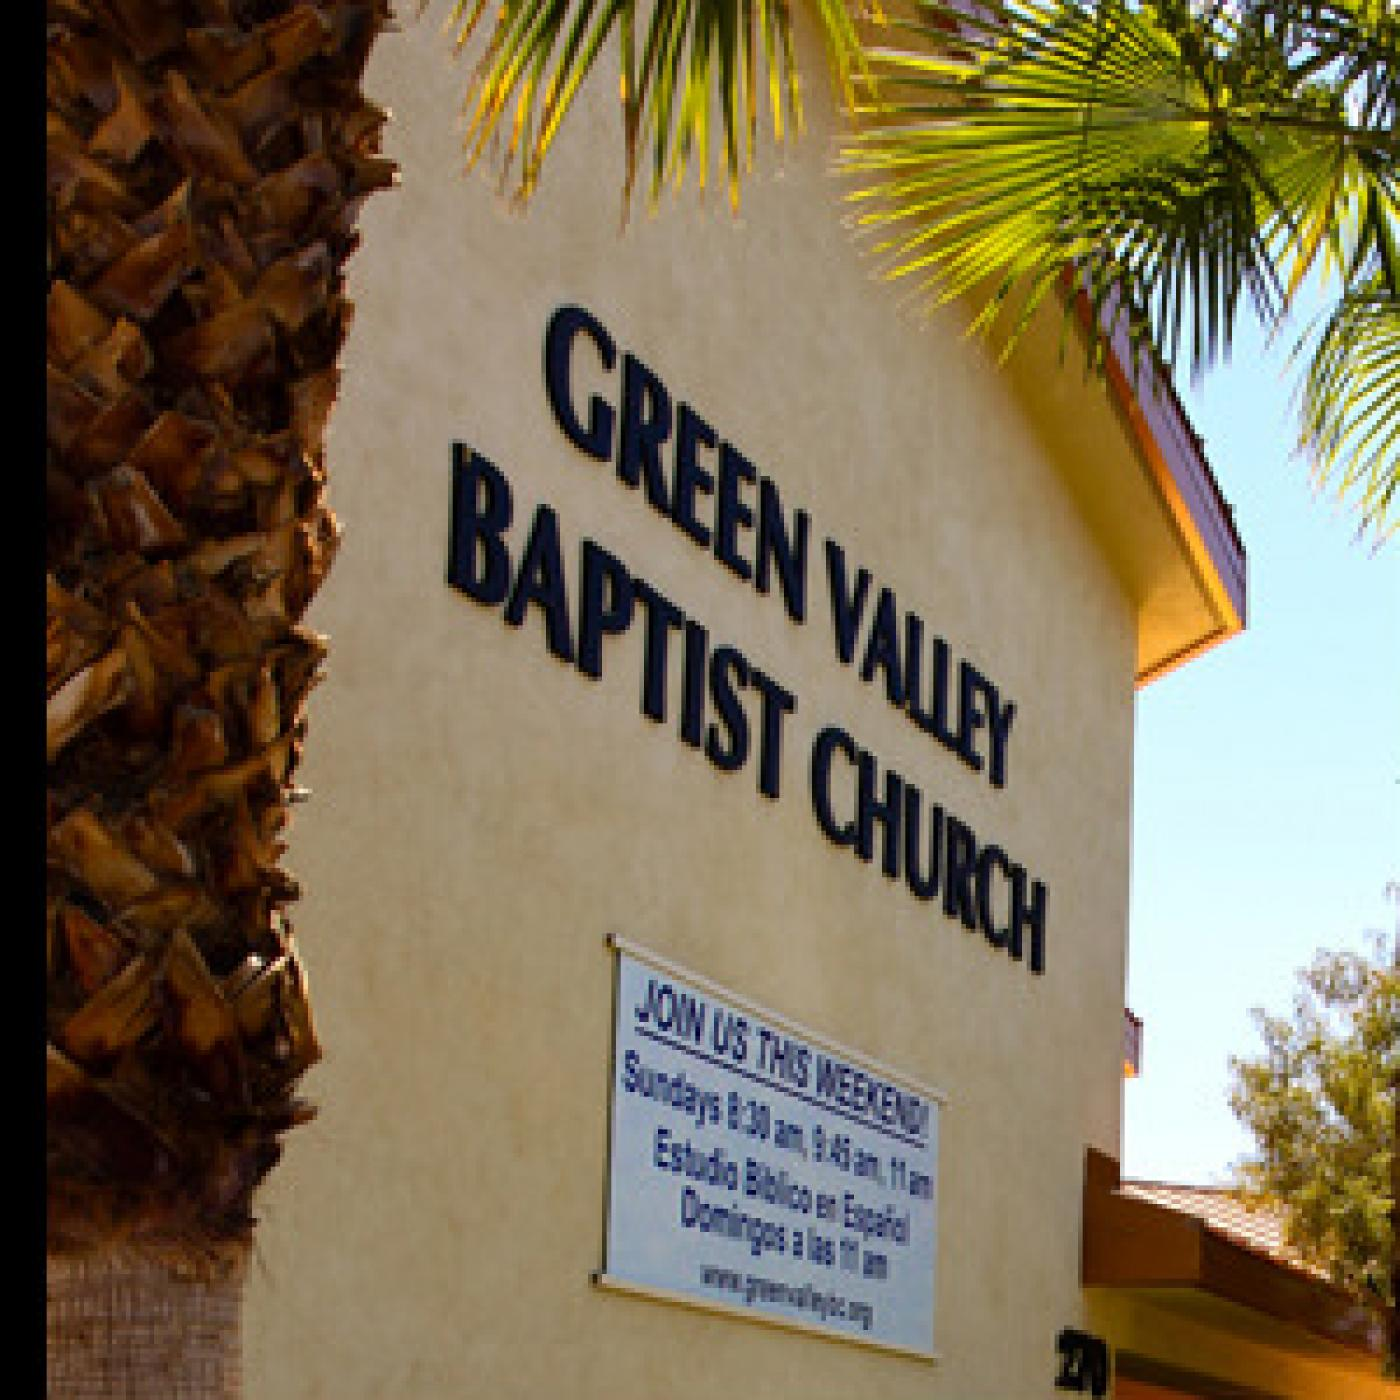 Green Valley Baptist Church,  Henderson, Nevada